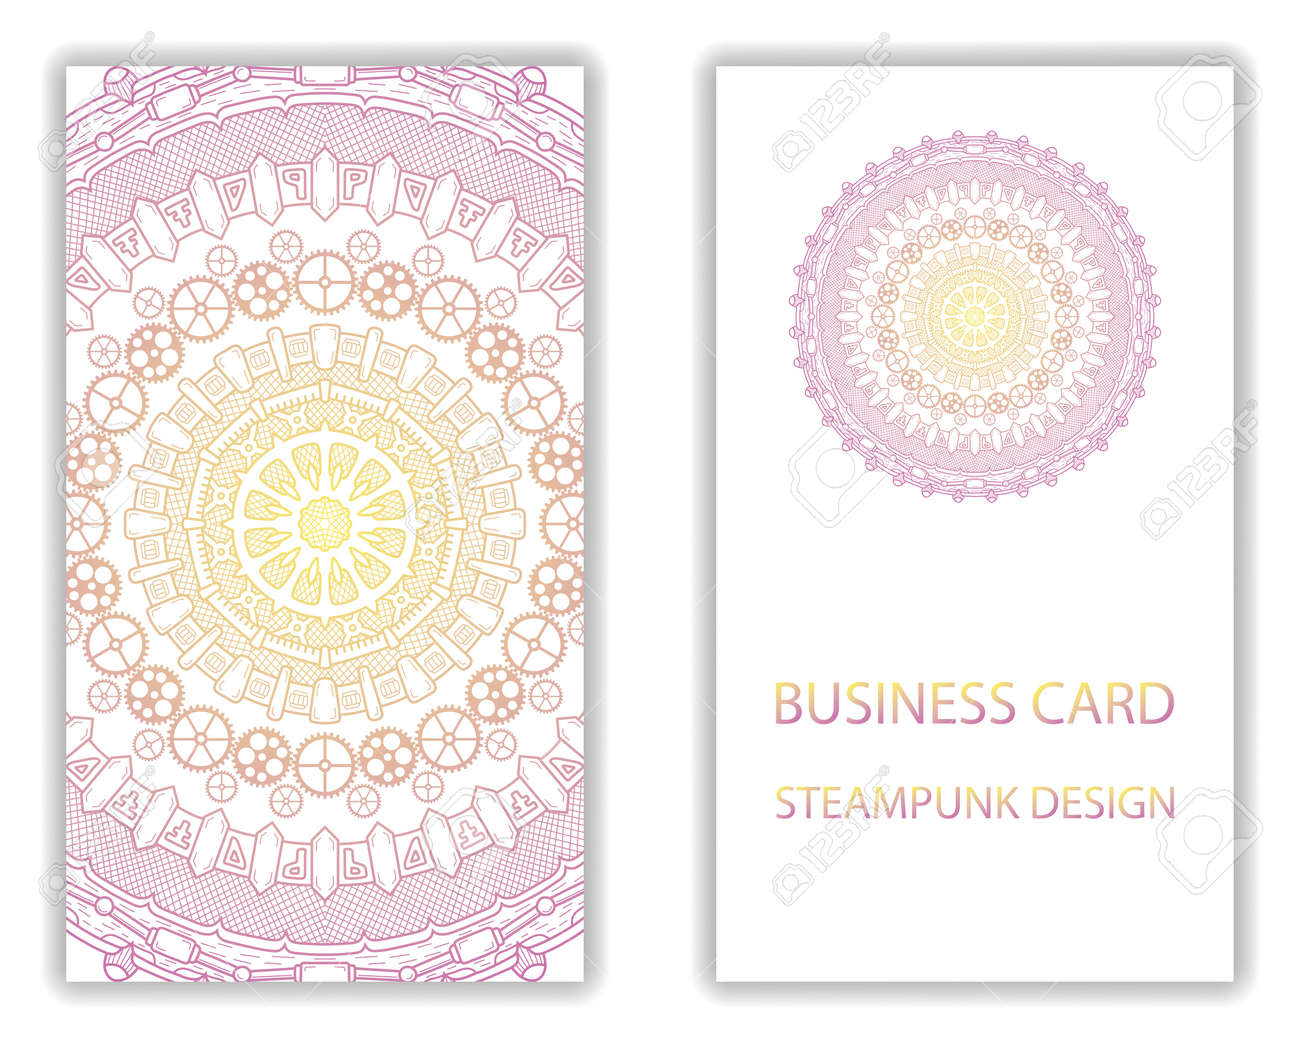 Business Card With Steampunk Abstract Design Elements. Steam ...